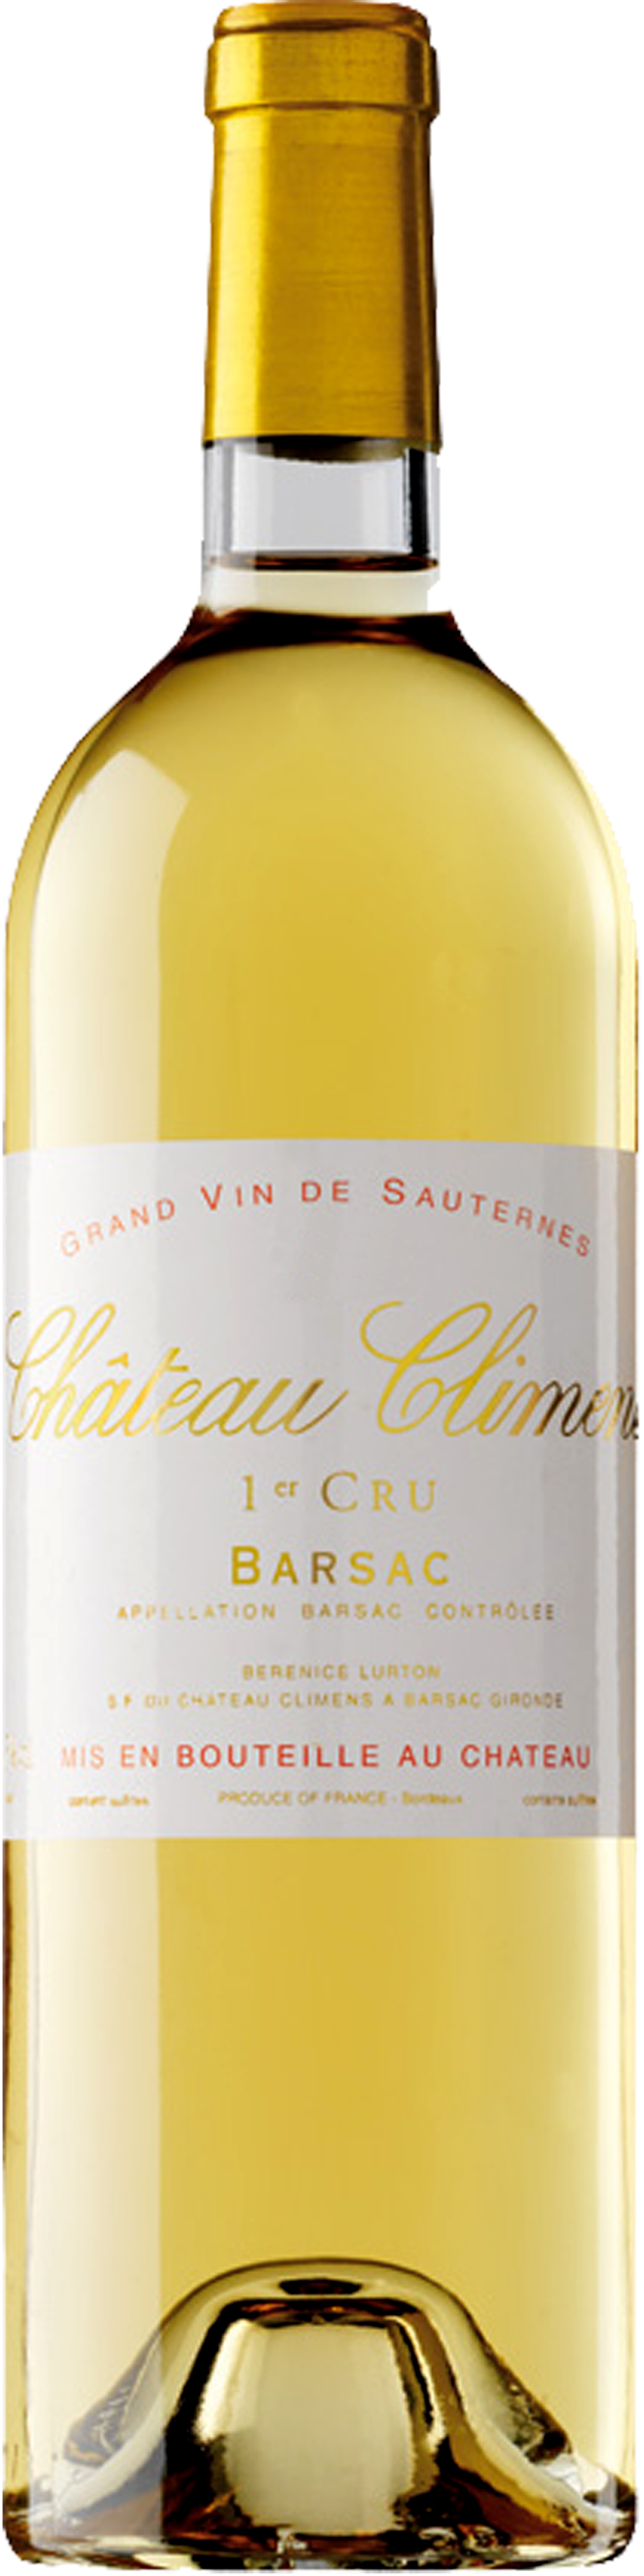 Image of product Château Climens, 1er Cru Barsac